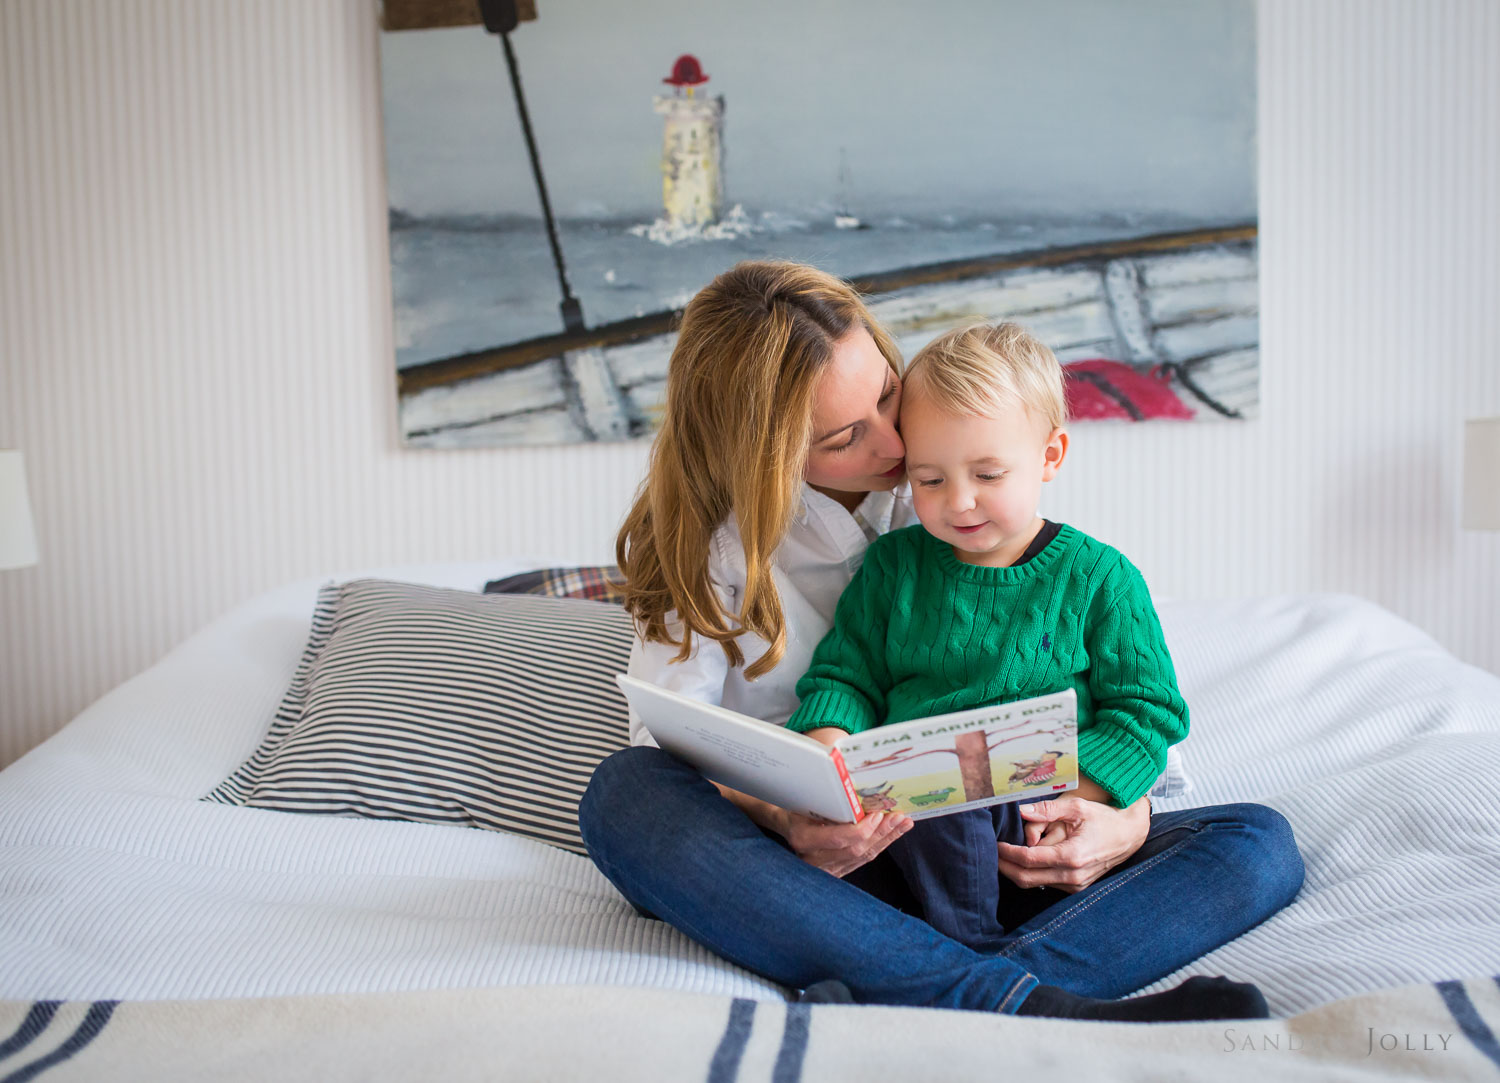 mother-and-son-reading-on-bed-by-Stockholm's-best-family-photographer-Sandra-Jolly.jpg